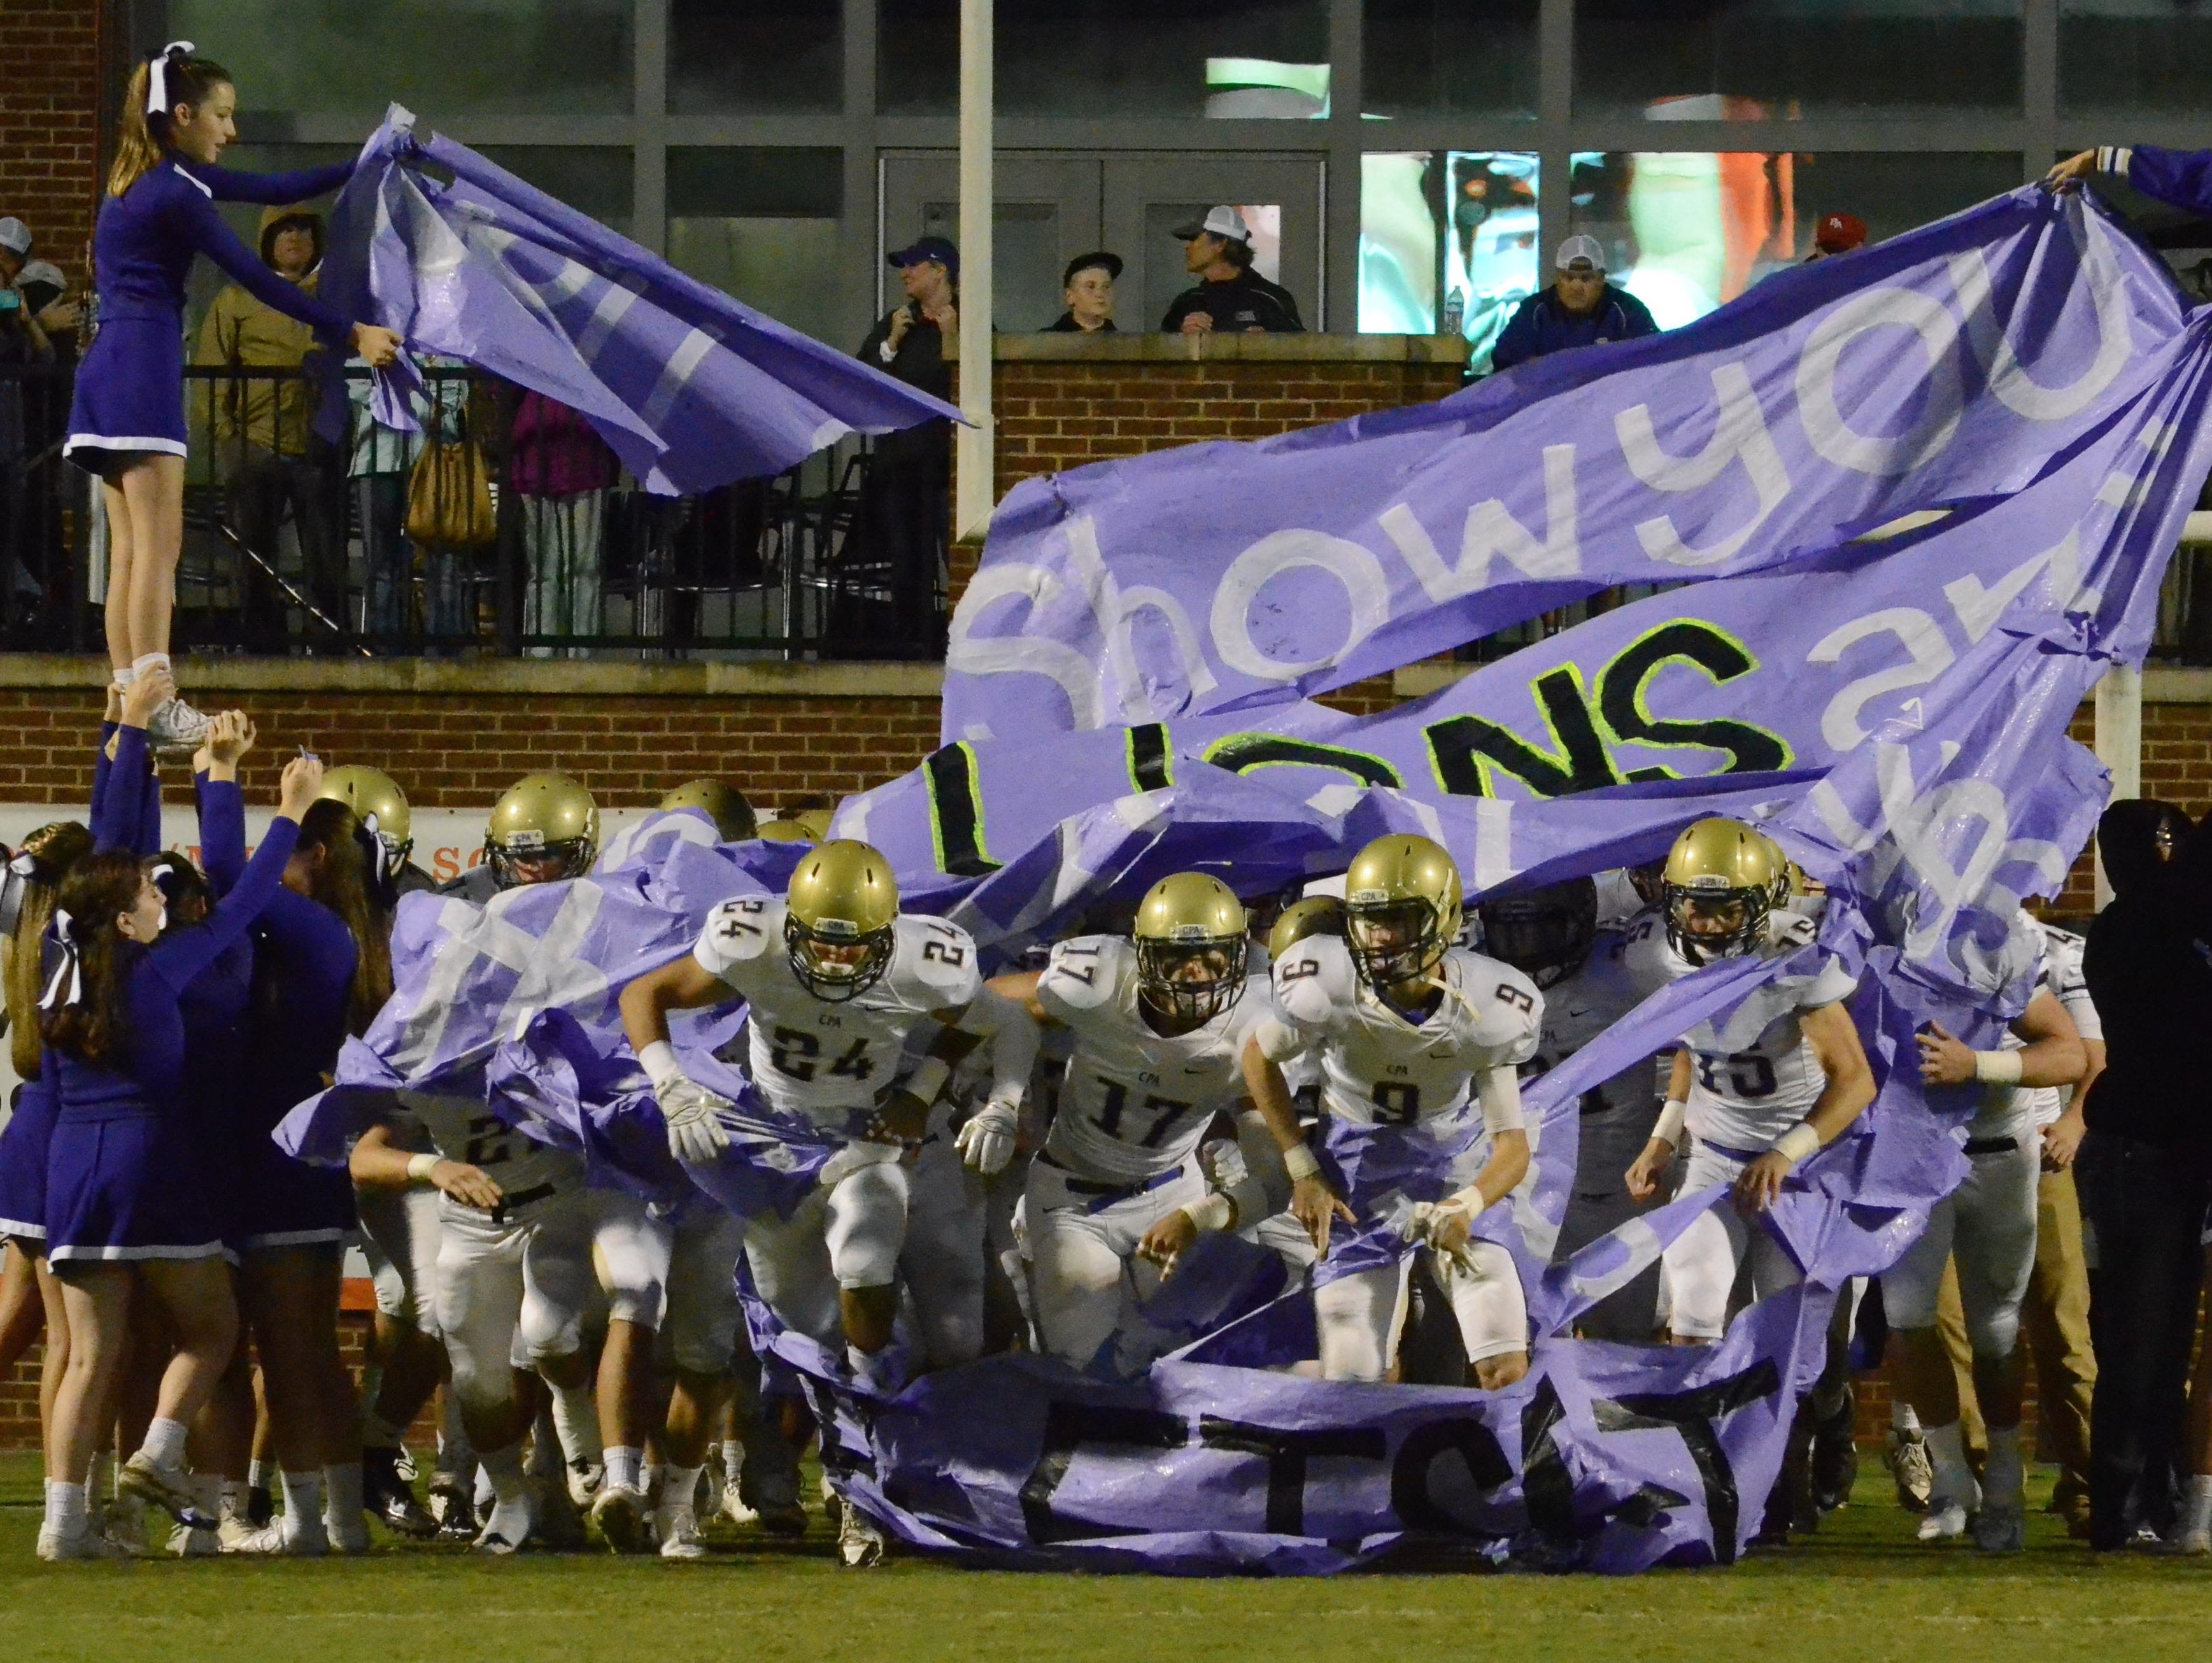 The Lions take the field prior to Friday's game at Ensworth.